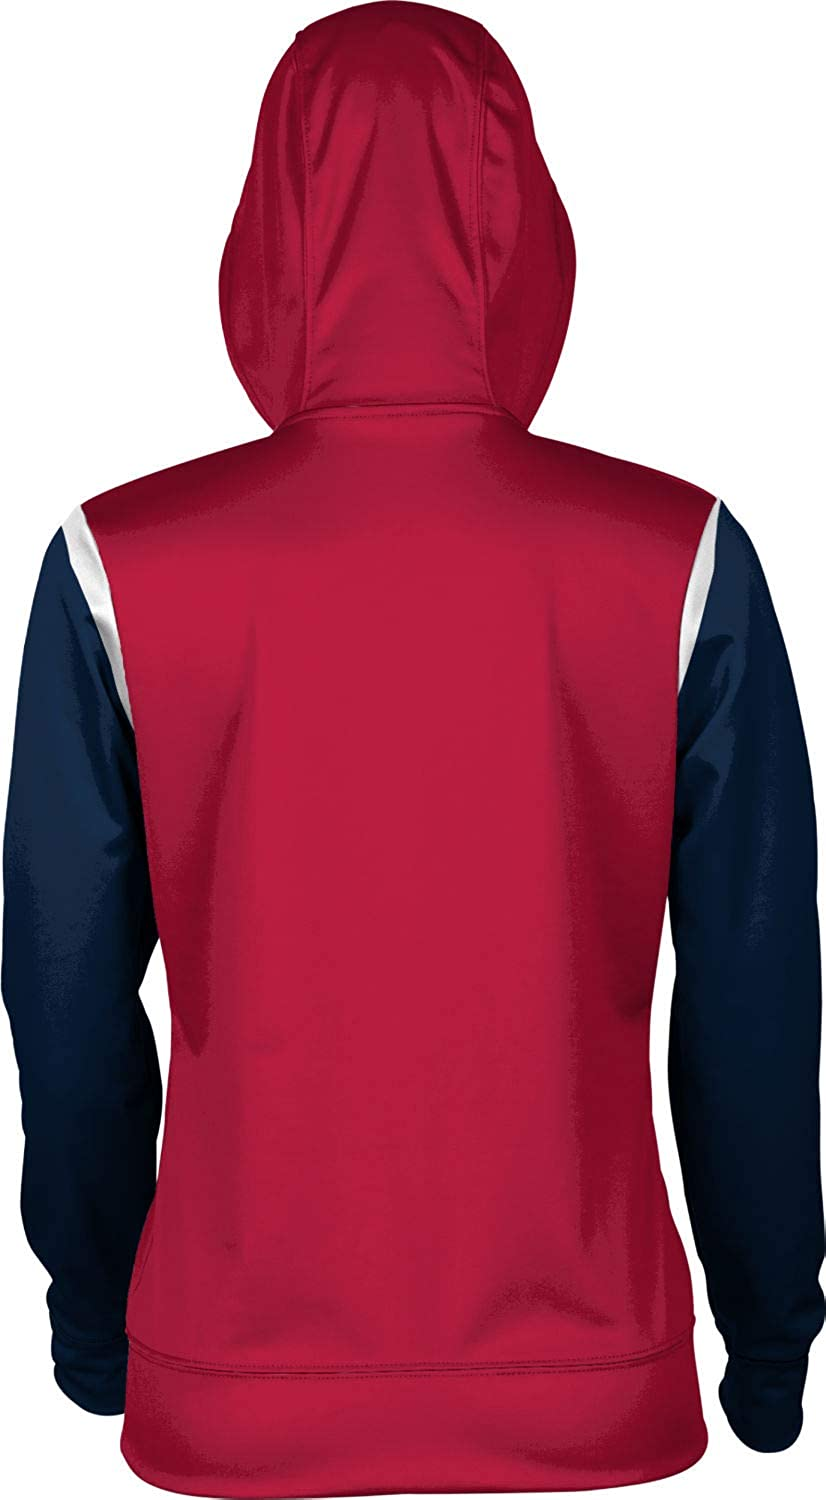 Stony Brook University Girls Pullover Hoodie School Spirit Sweatshirt Tailgate